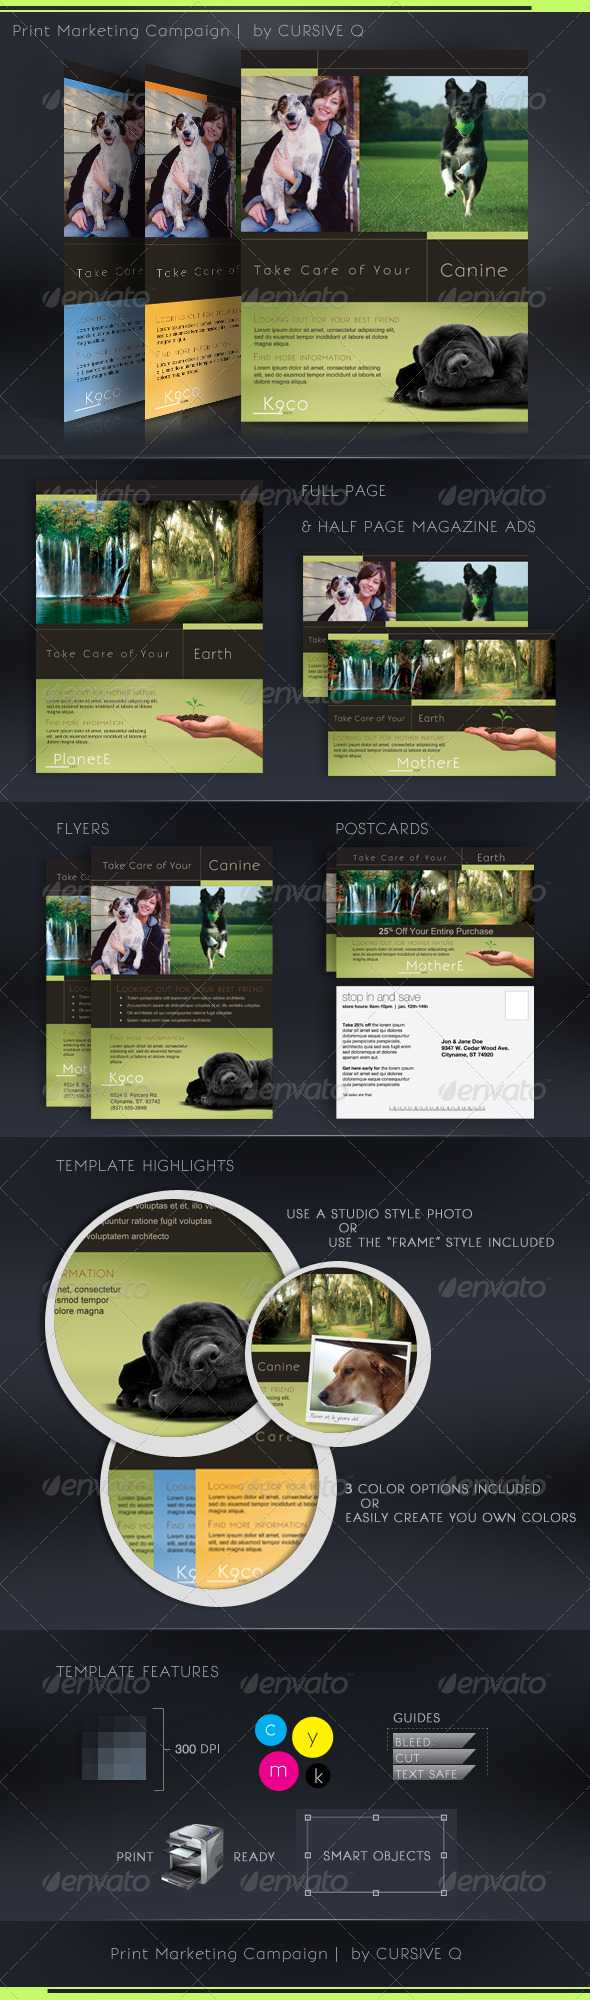 Print Ad Template Graphics, Designs & Templates Pertaining To Magazine Ad Template Word